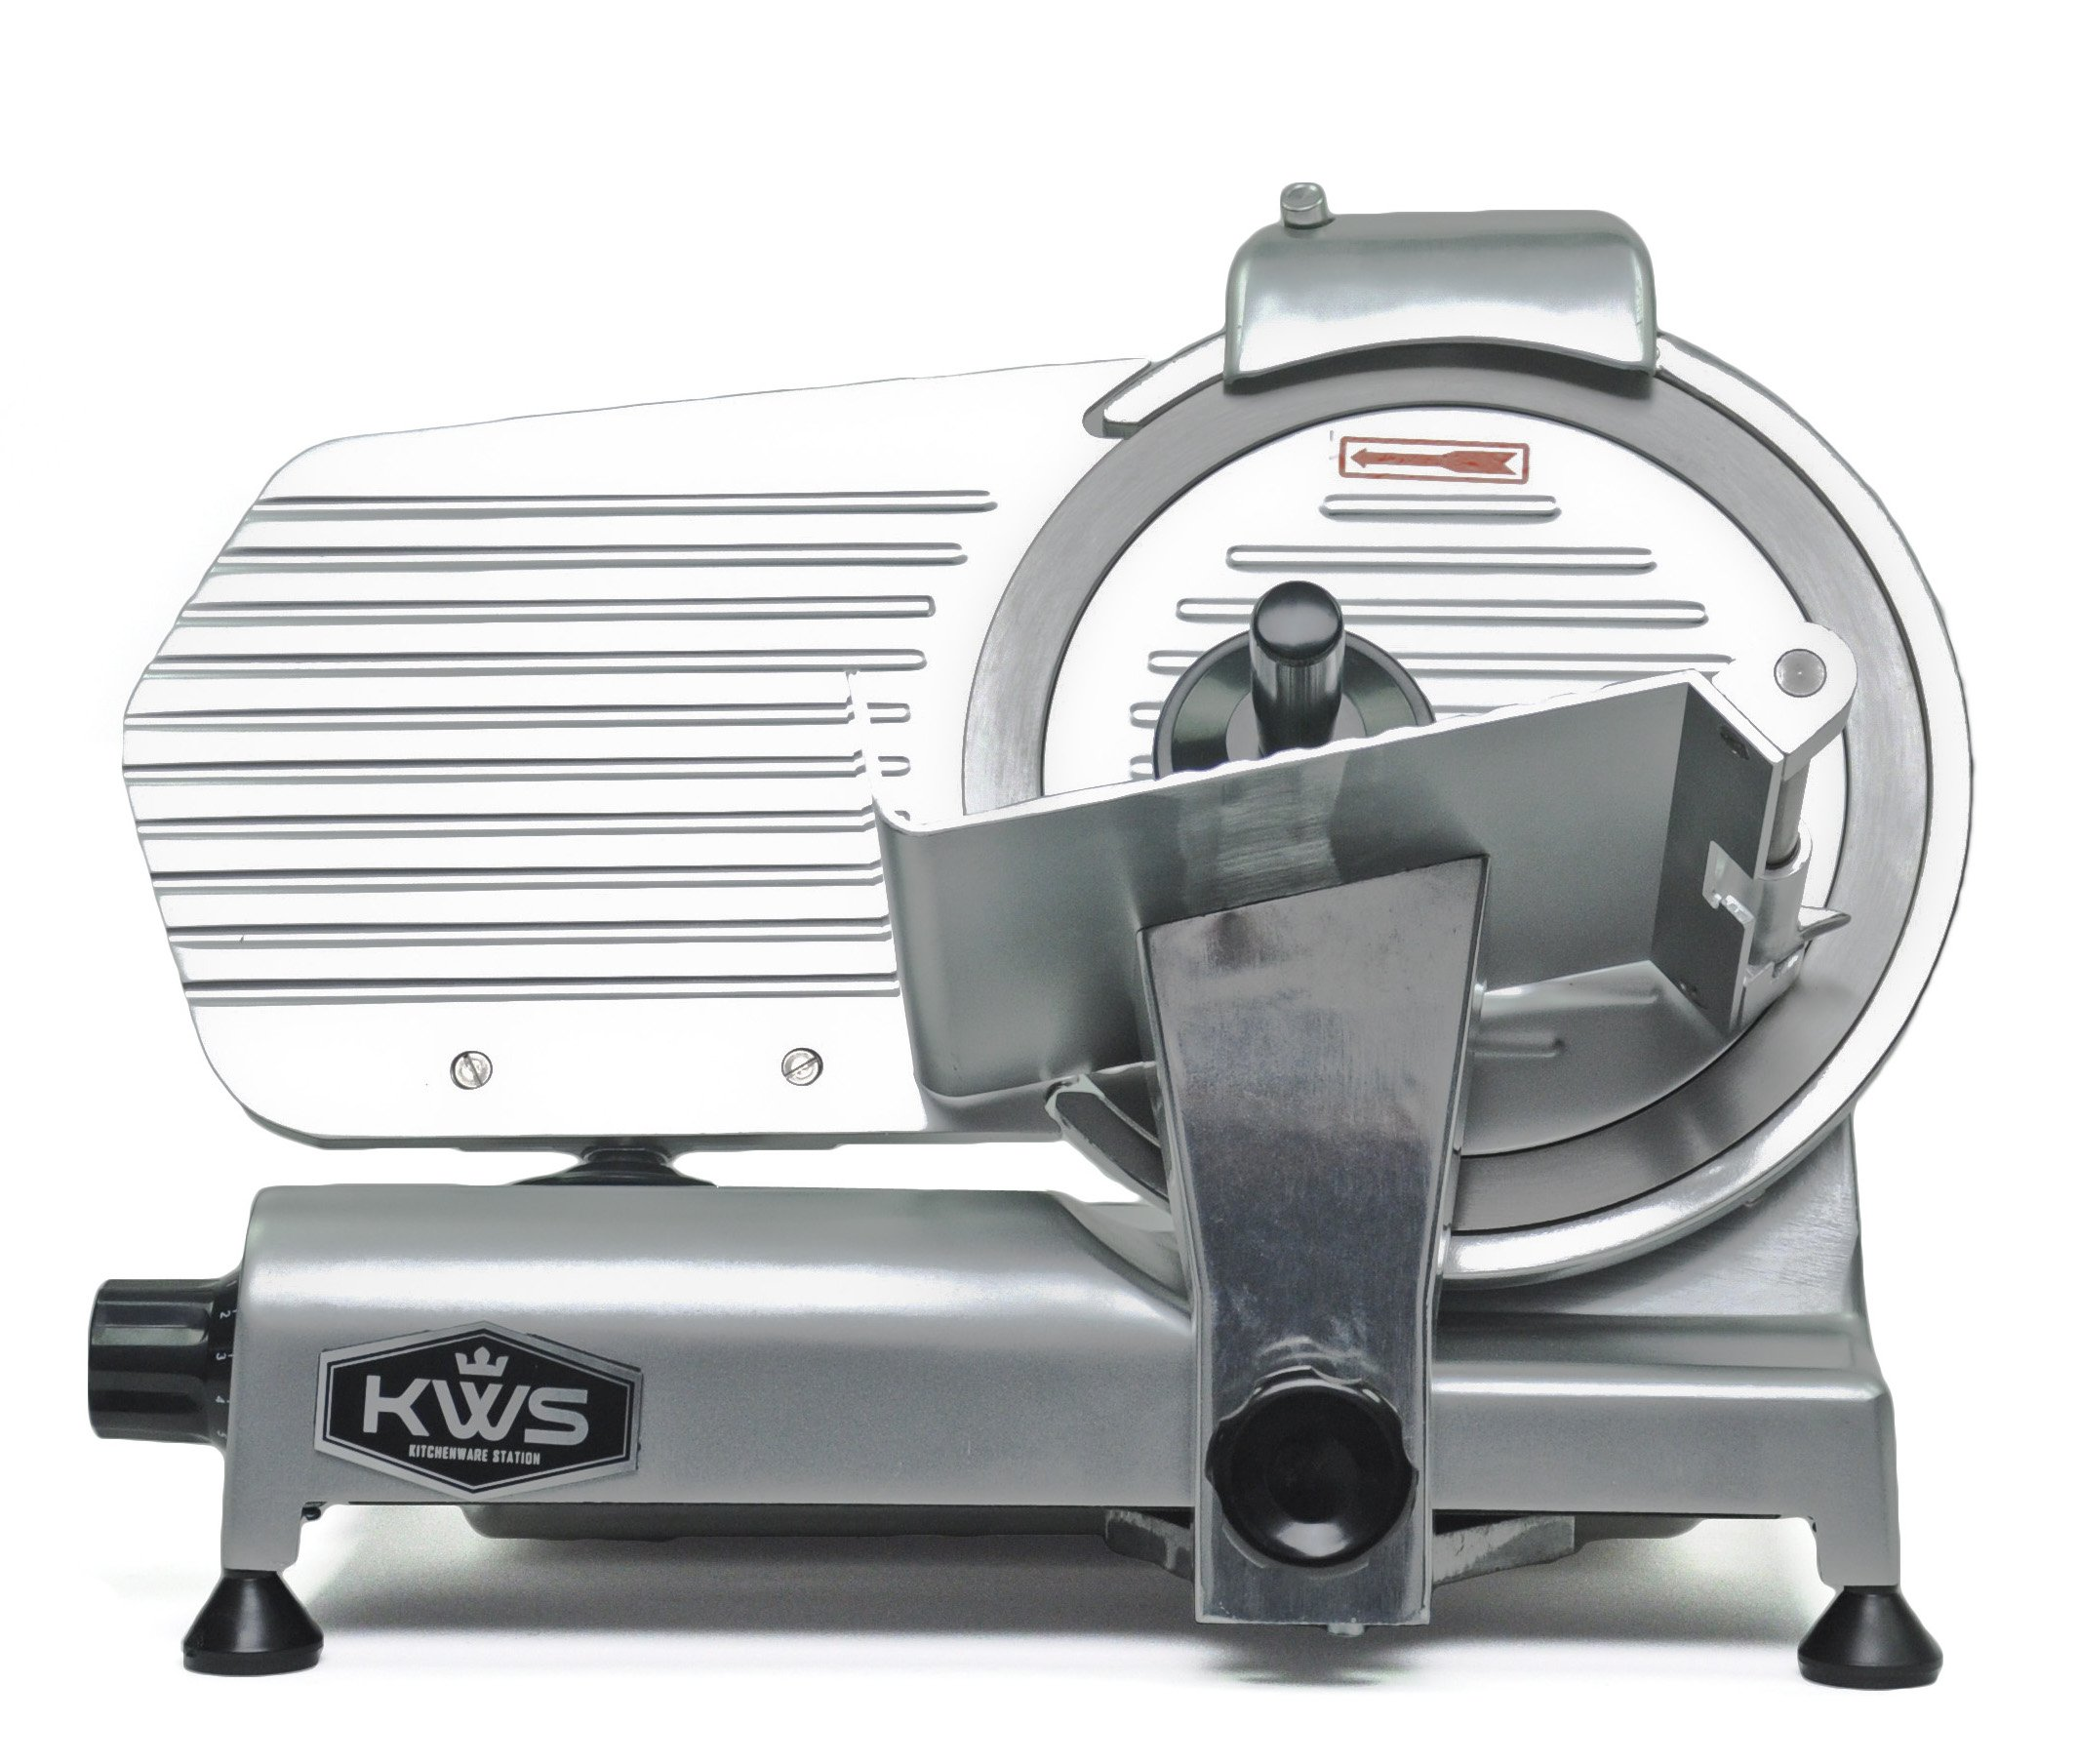 KWS Premium Commercial 320w Electric Meat Slicer 10'' Stainless Steel Blade, Frozen Meat/ Cheese/ Food Slicer Low Noises Commercial and Home Use